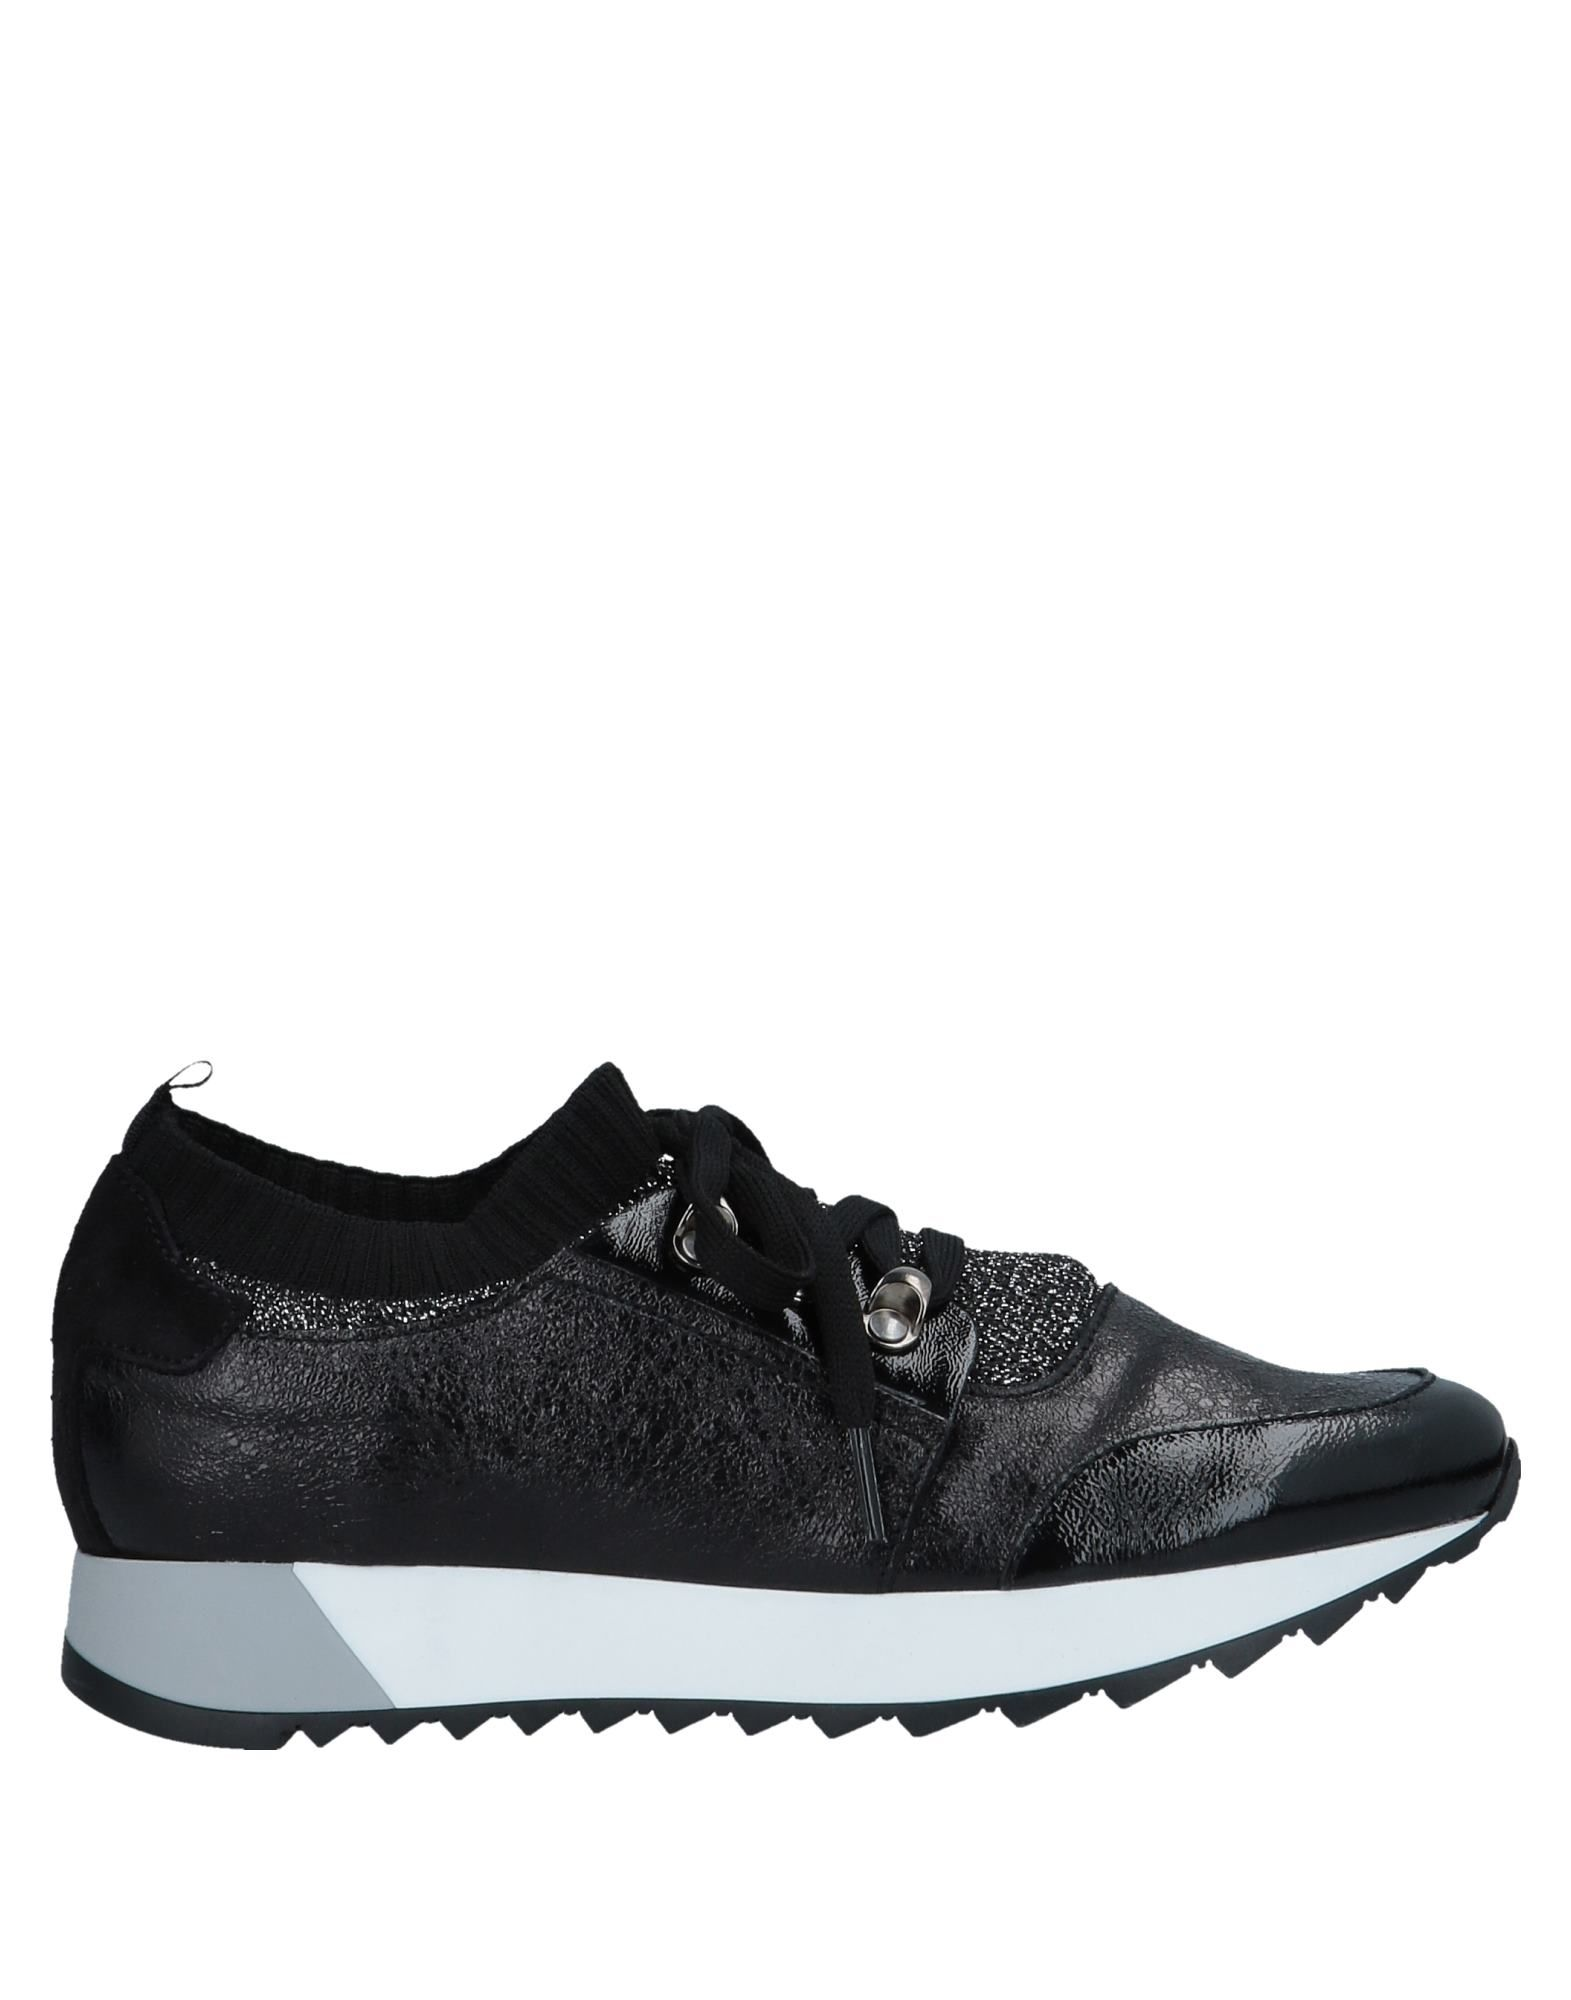 Kanna Sneakers - Canada Women Kanna Sneakers online on  Canada - - 11570739RE 142a72